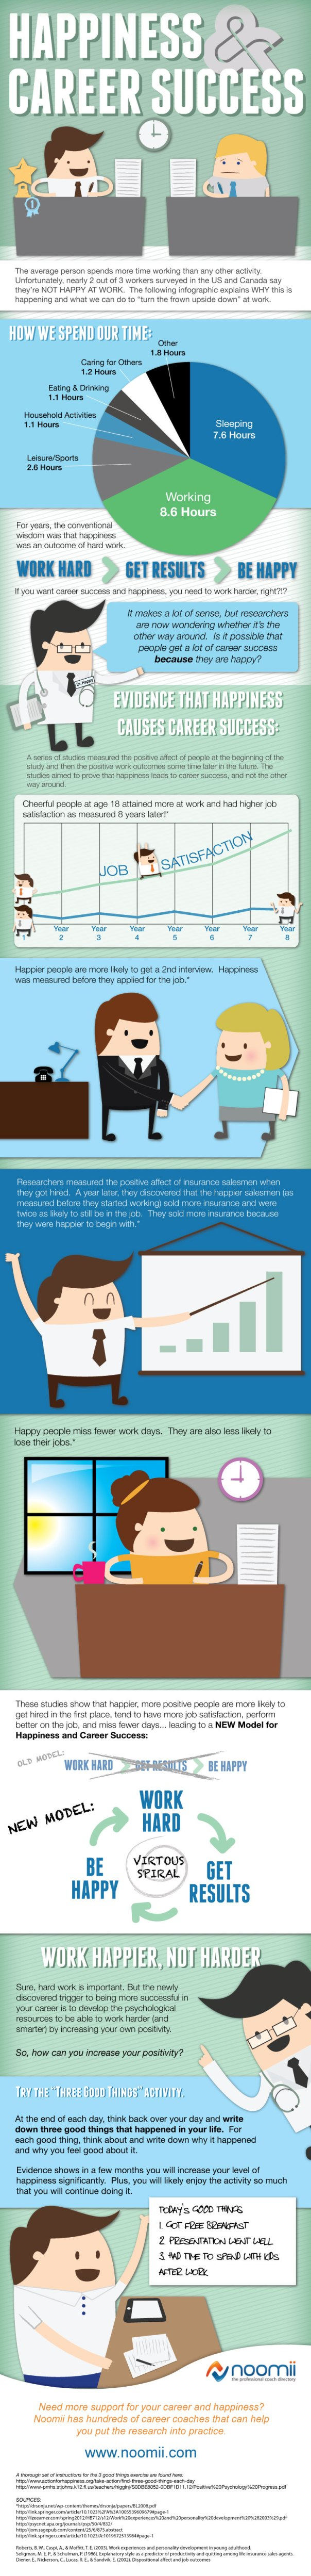 Happiness and Career Success